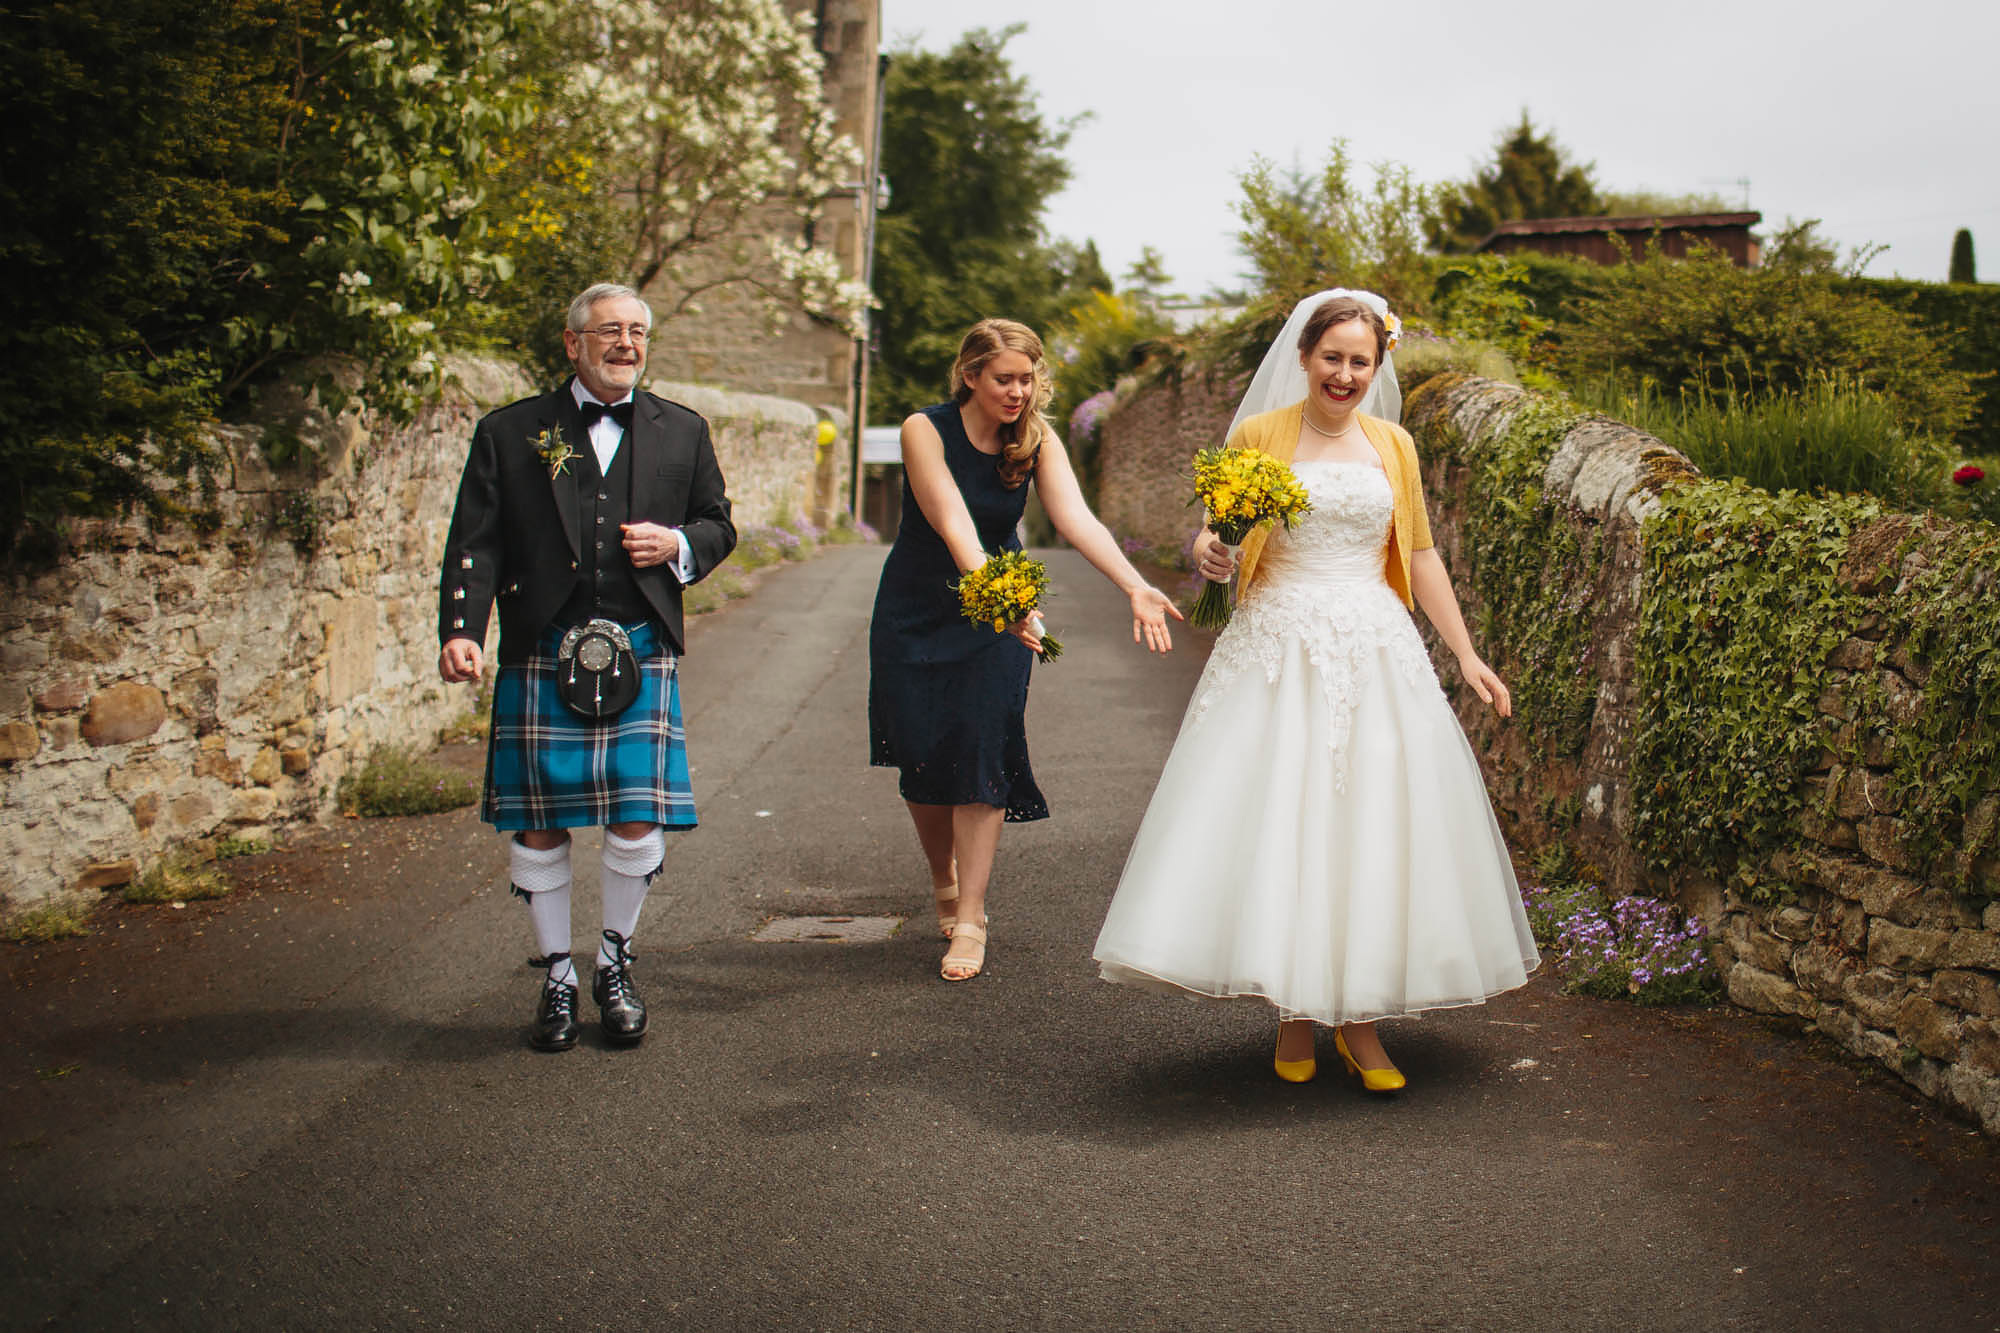 Leeds Yorkshire Wedding Photographer Bride Dress Father Bridesmaid Kilt Flowers